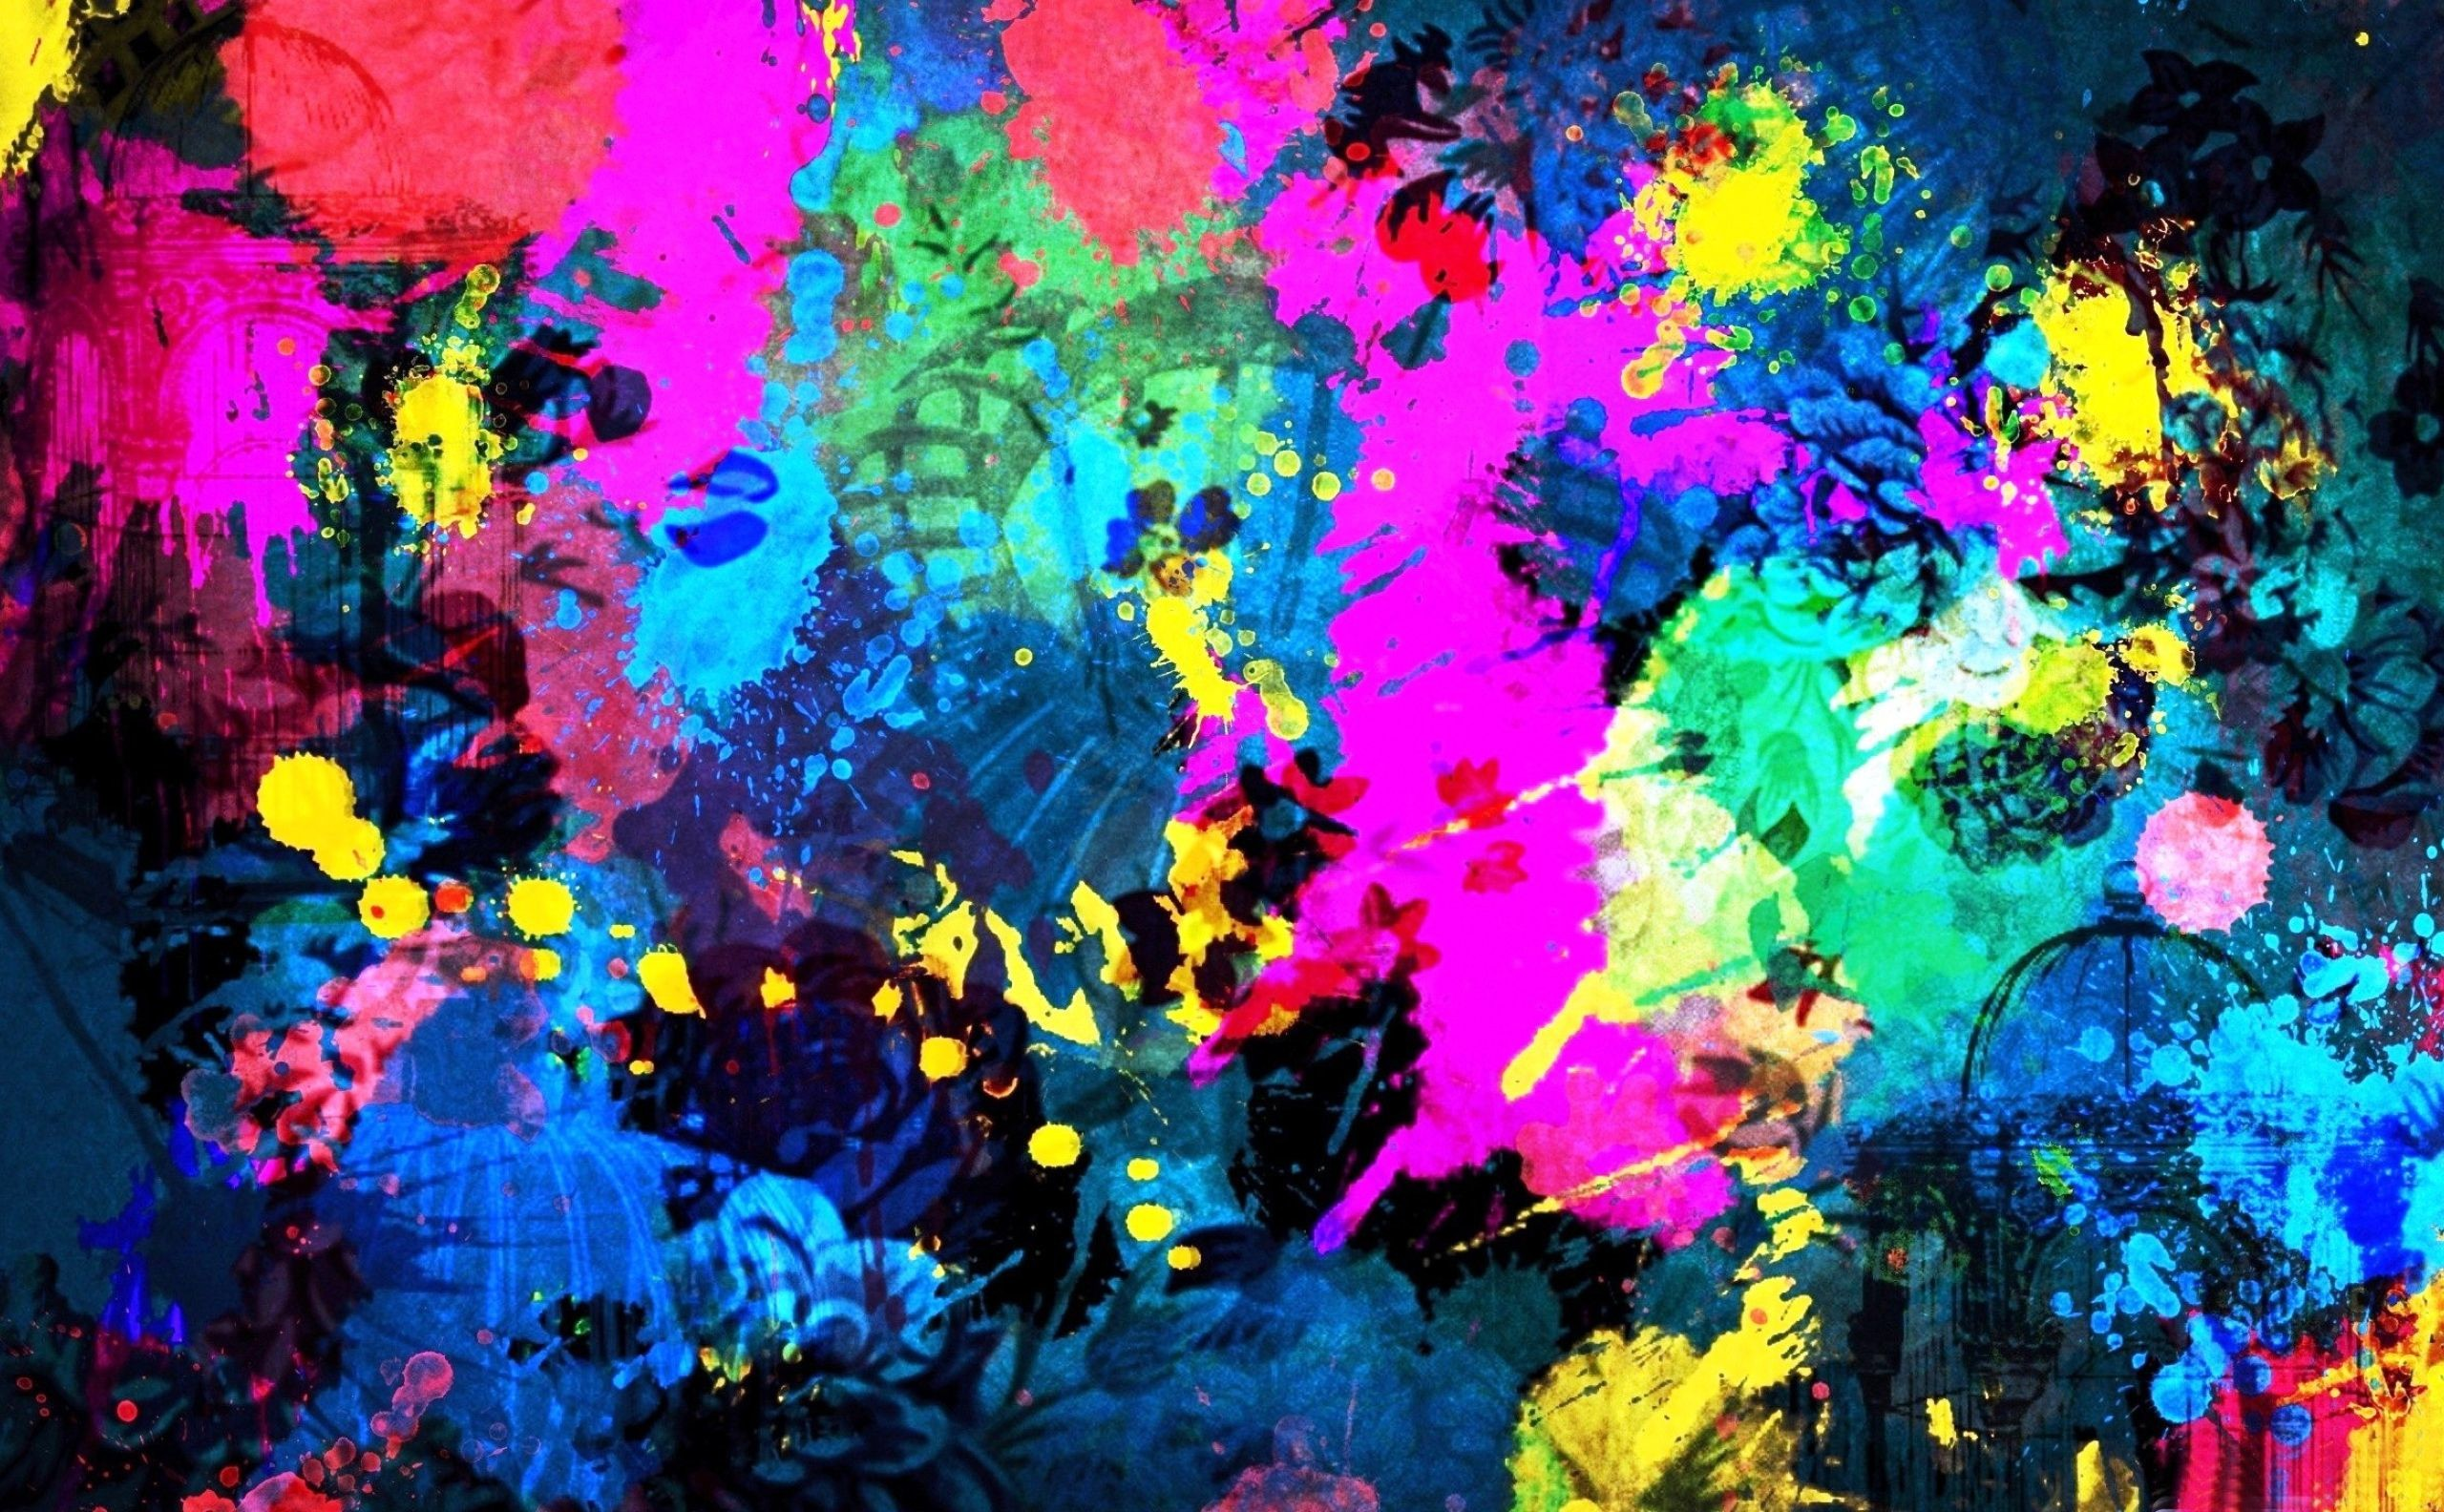 art cool abstract wallpaper - photo #1